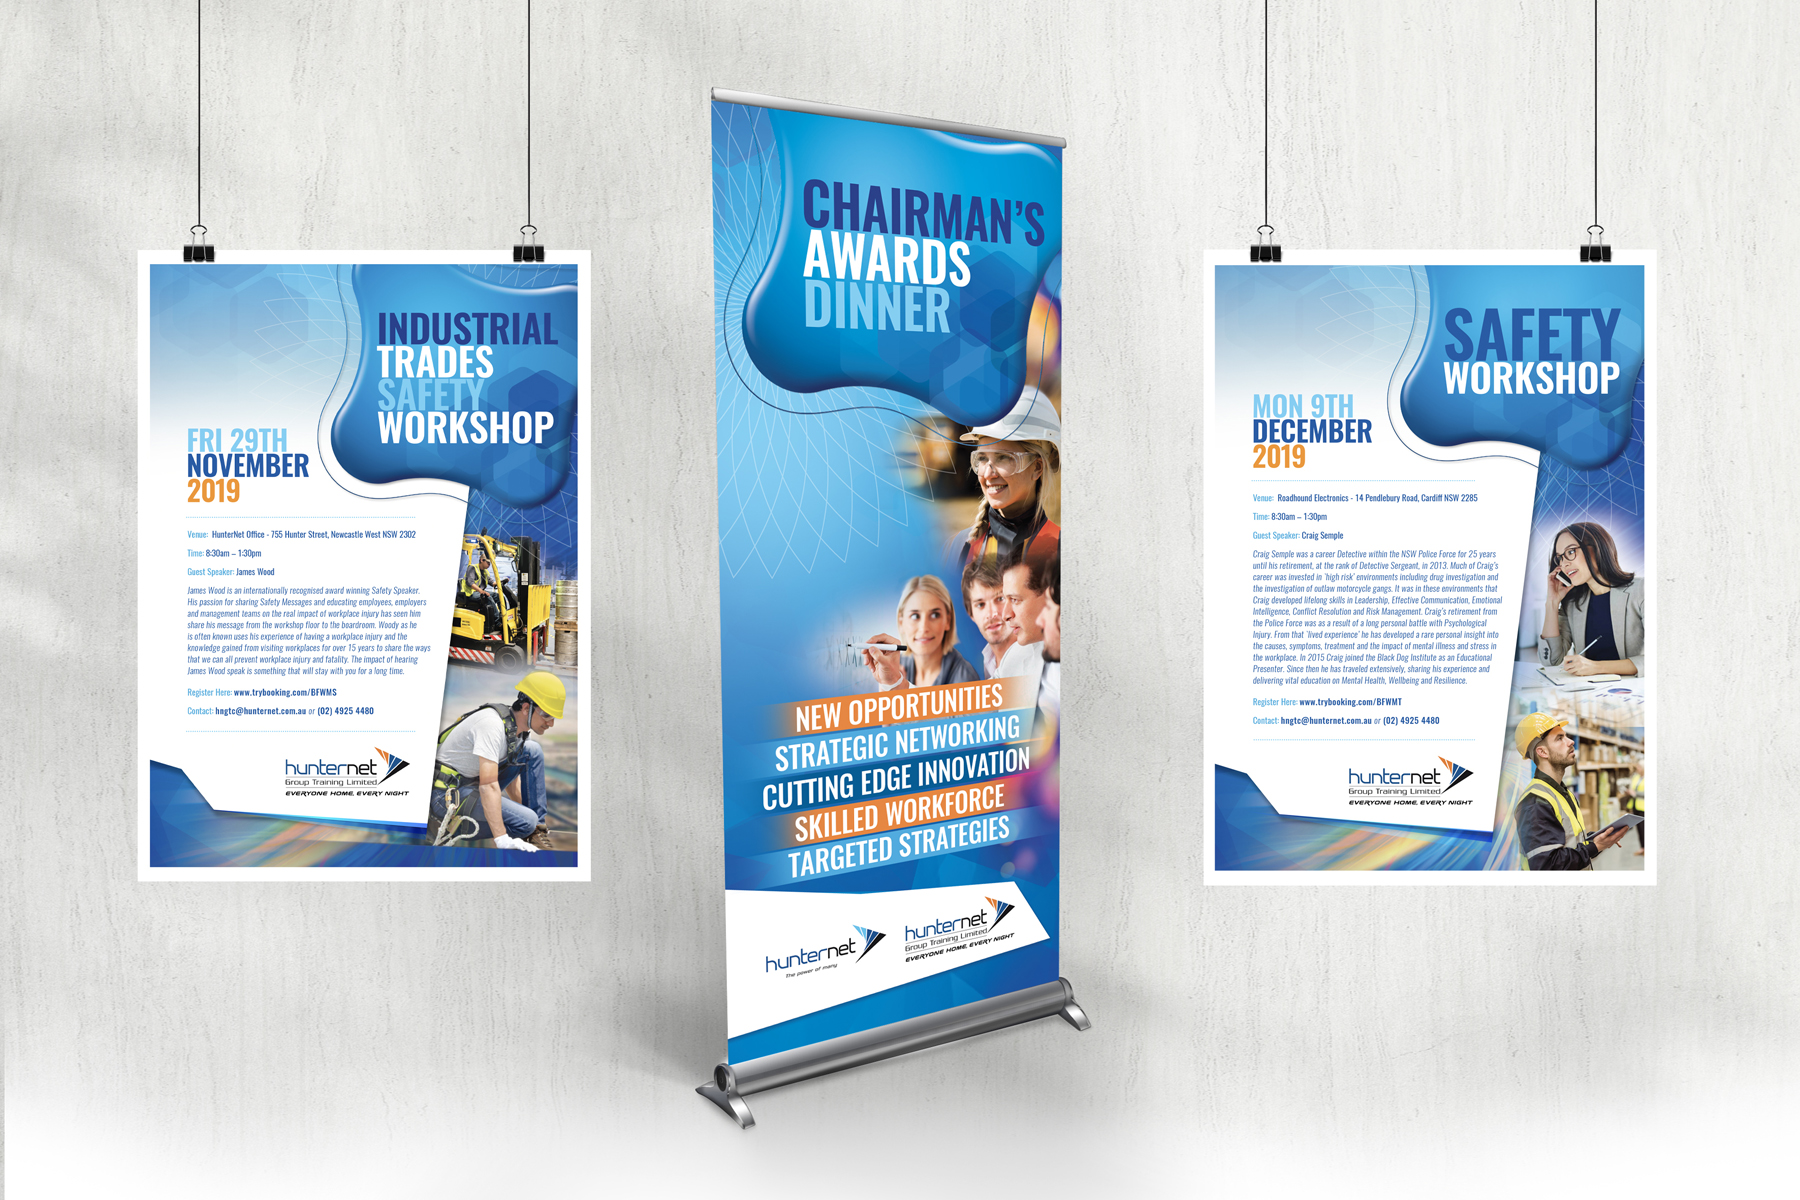 Hunternet Chairmans Awards Pull Up Banner and Posters